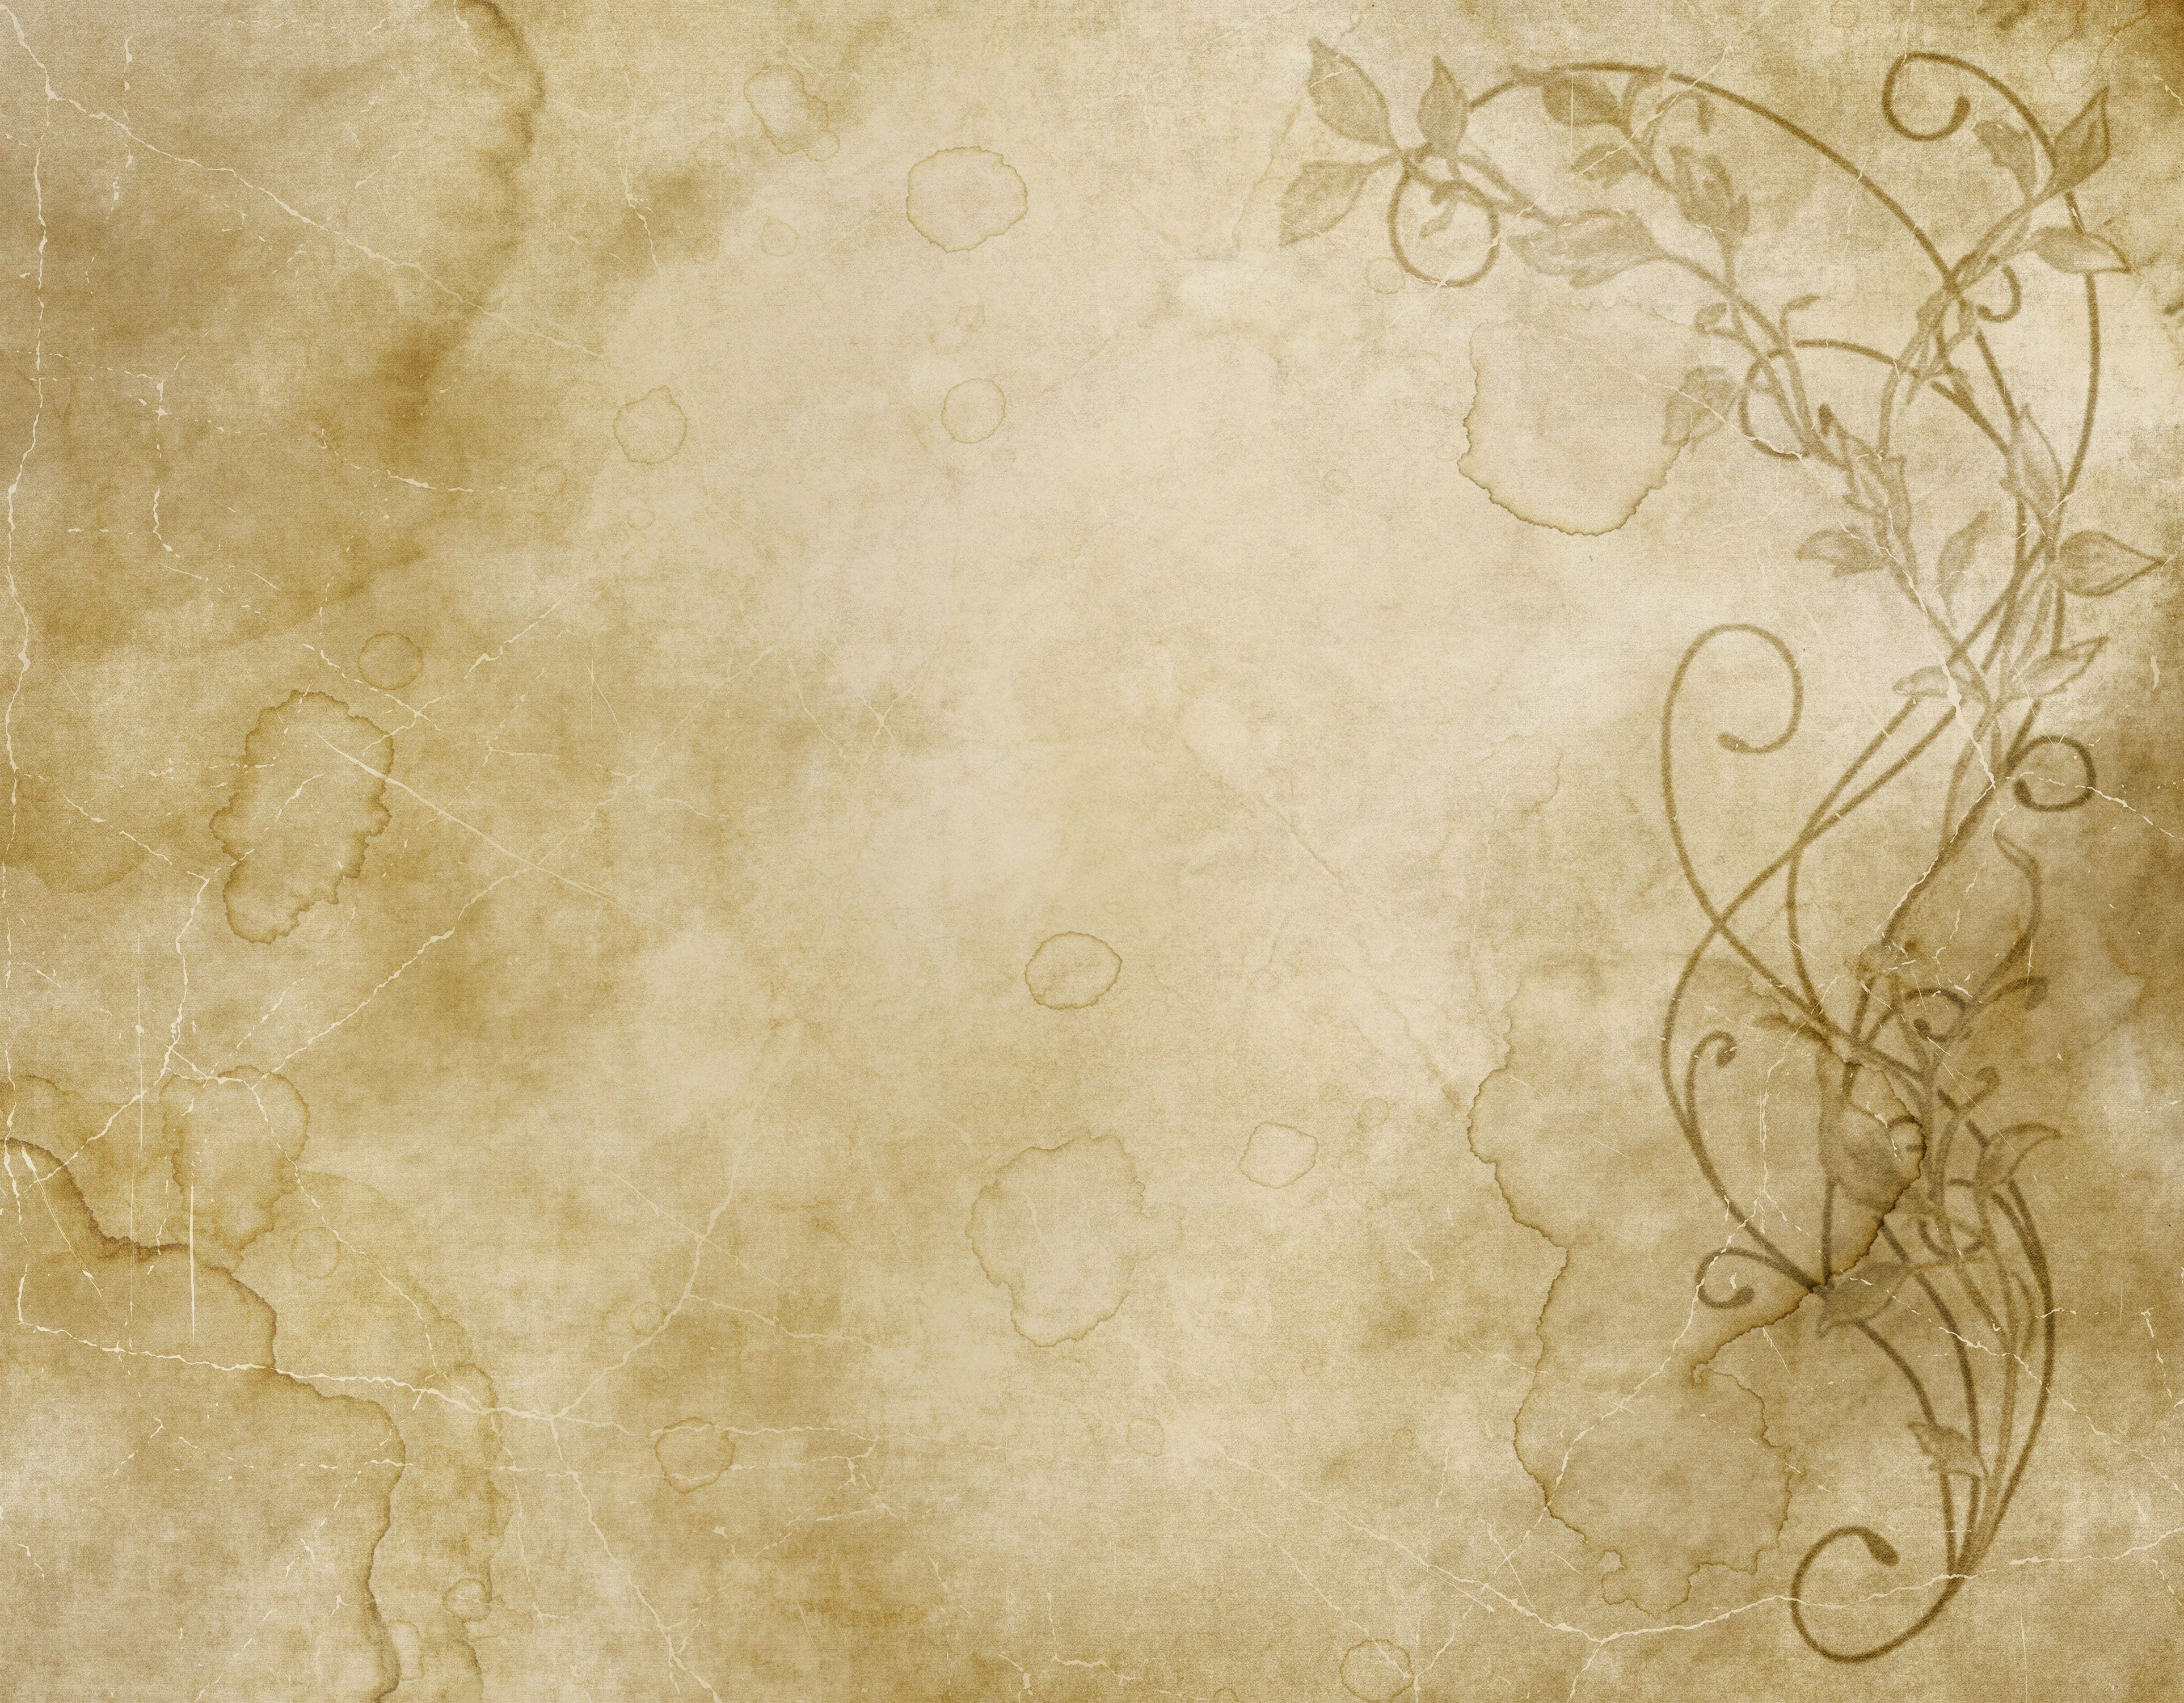 Excellent faded and worn floral design on old paper or parchment 3850x3002